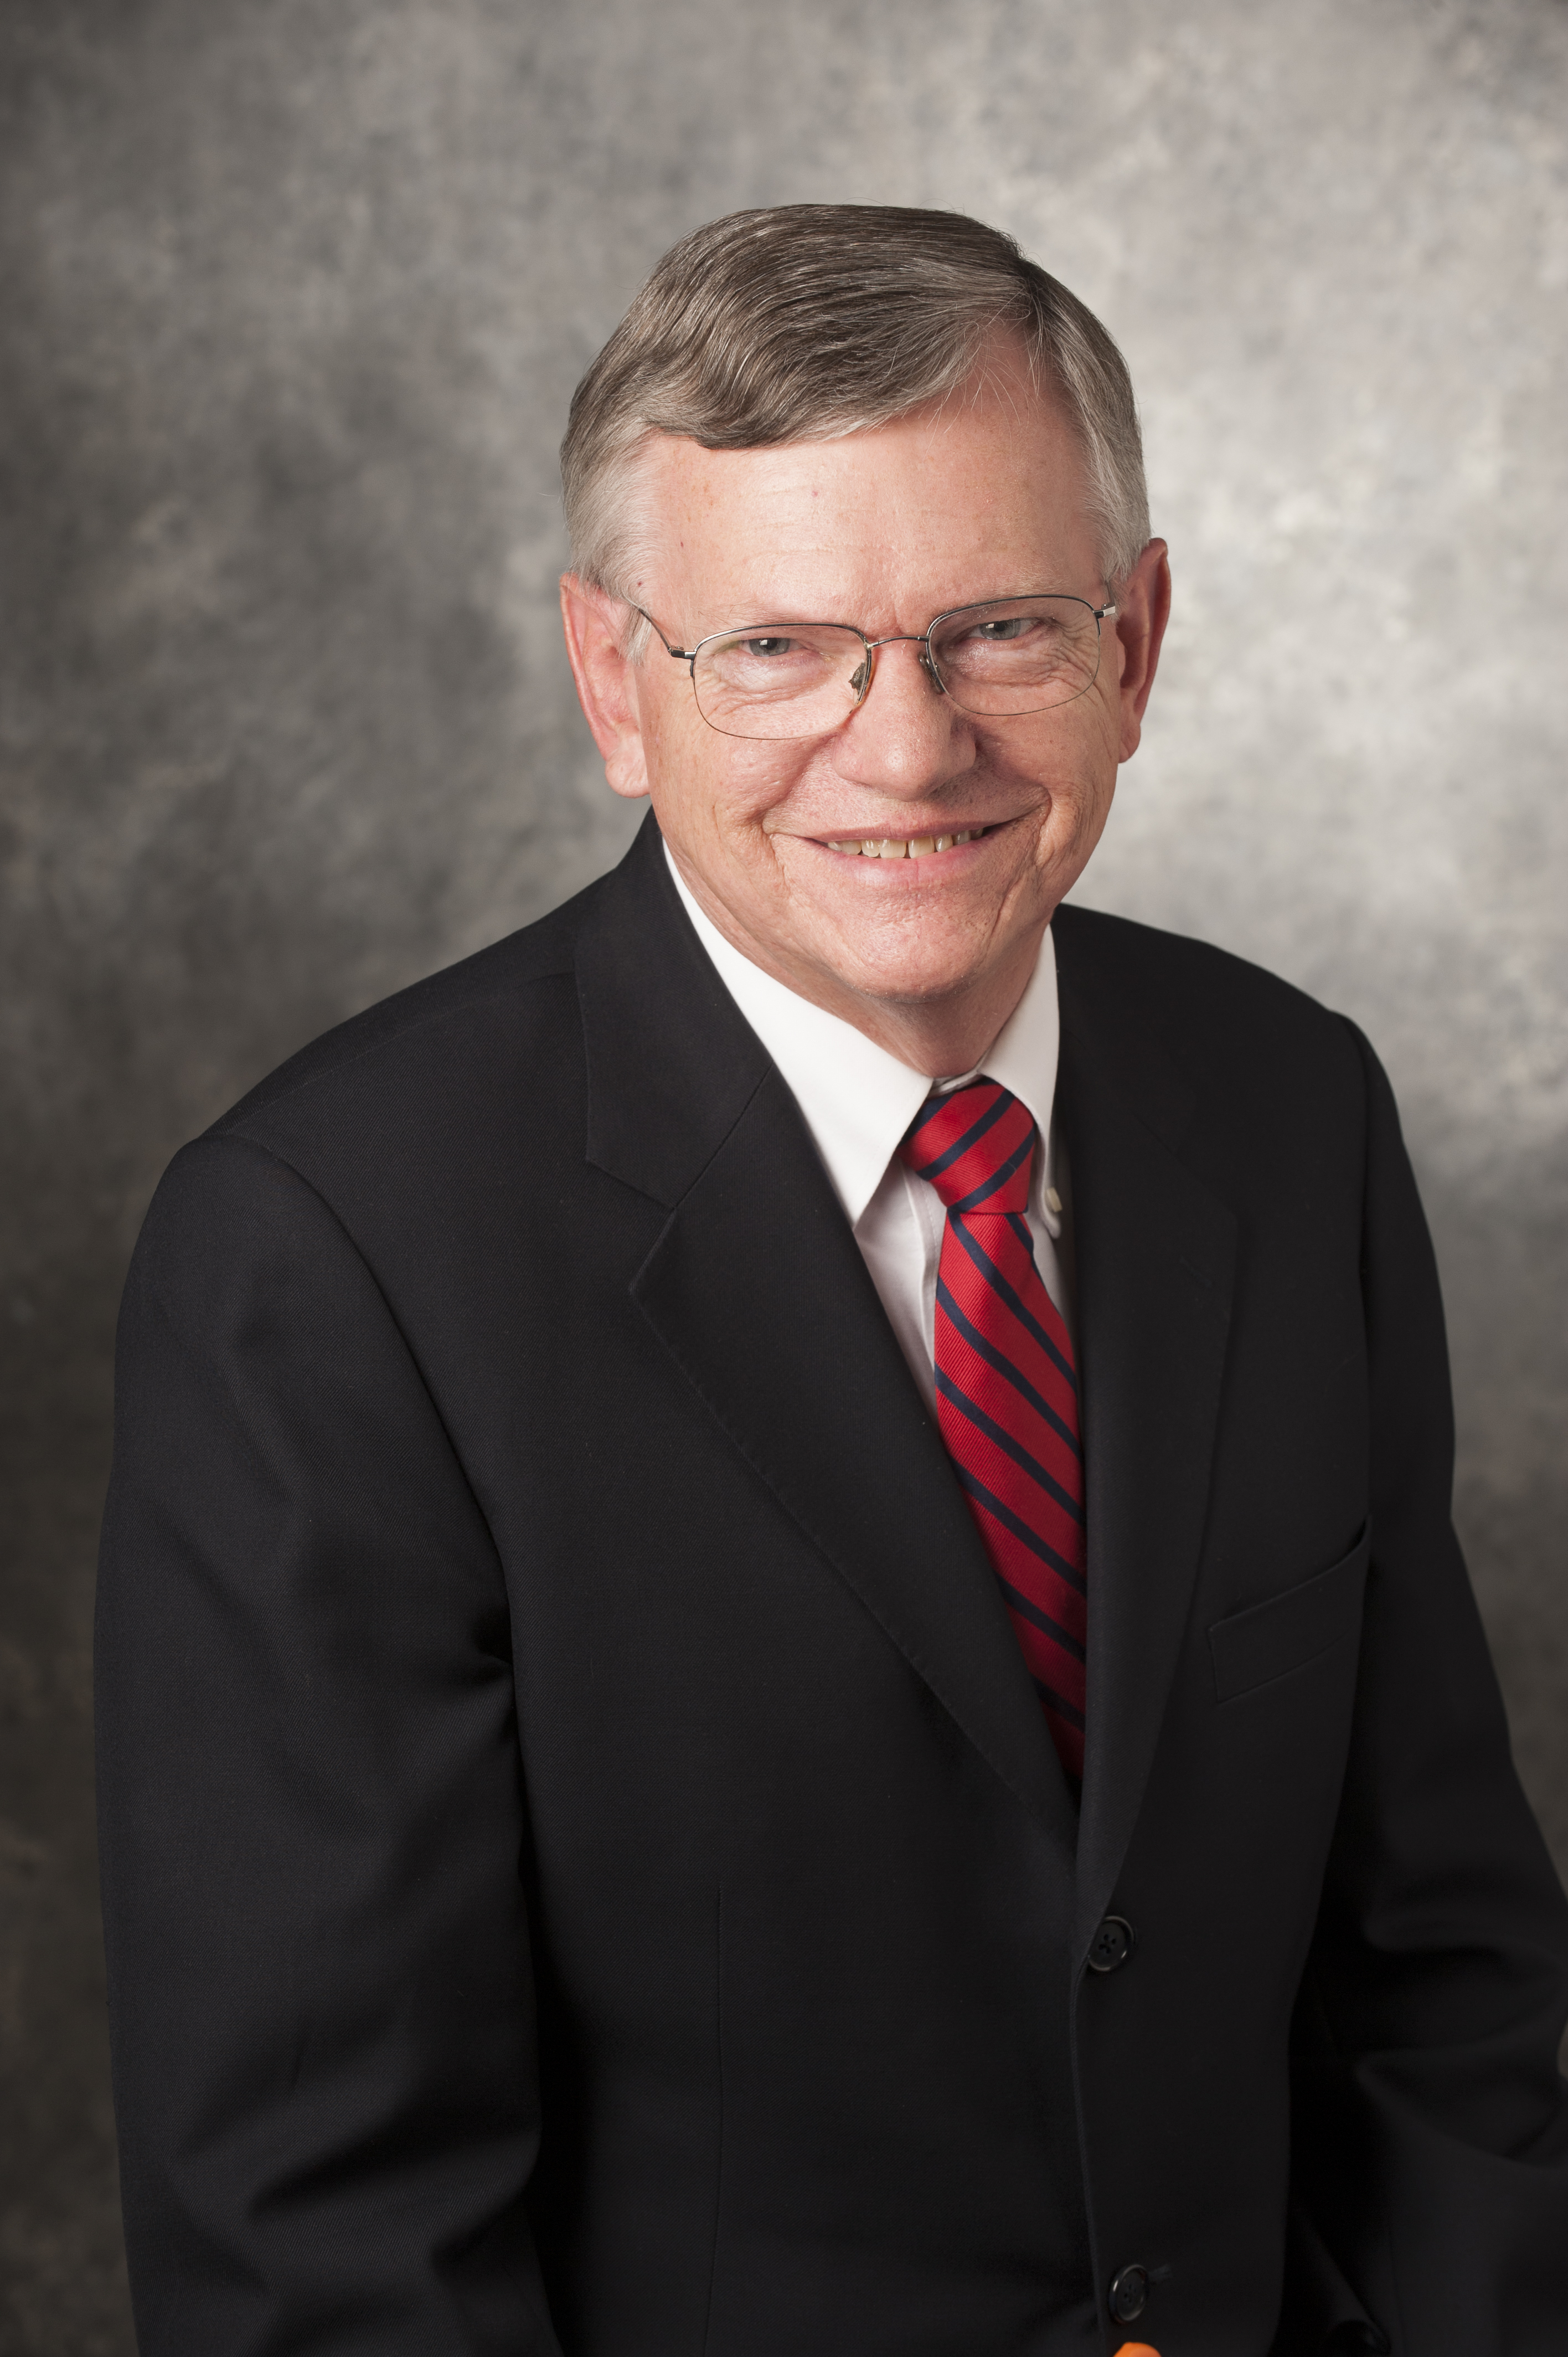 Dr. Ted A. Campbell, Associate Professor of Church History, Perkins School of Theology, Southern Methodist University SMU